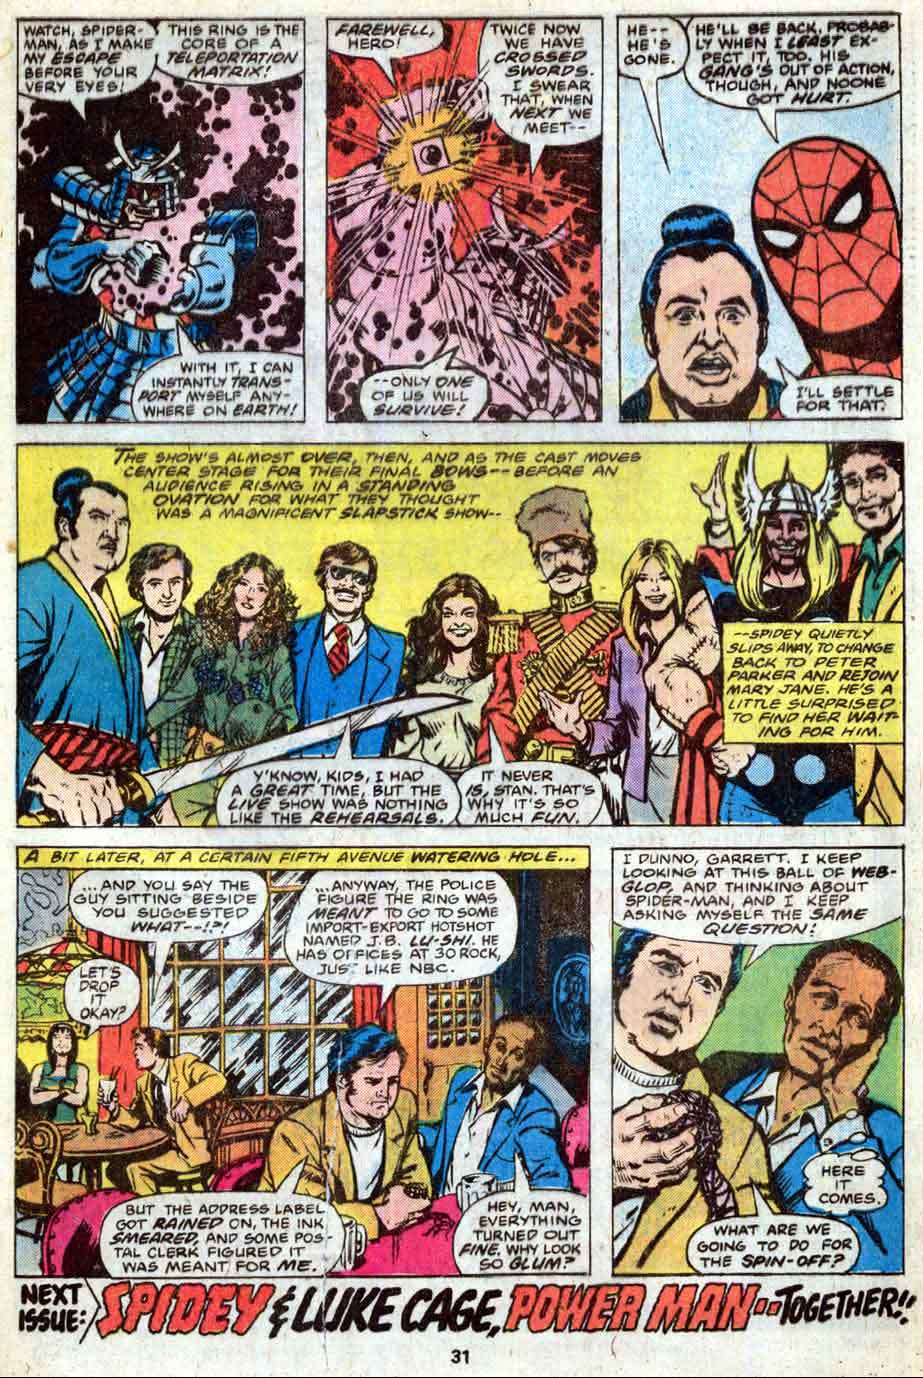 MARVEL TEAM-UP #74 featuring Spider-Man and the cast from Saturday Night Live